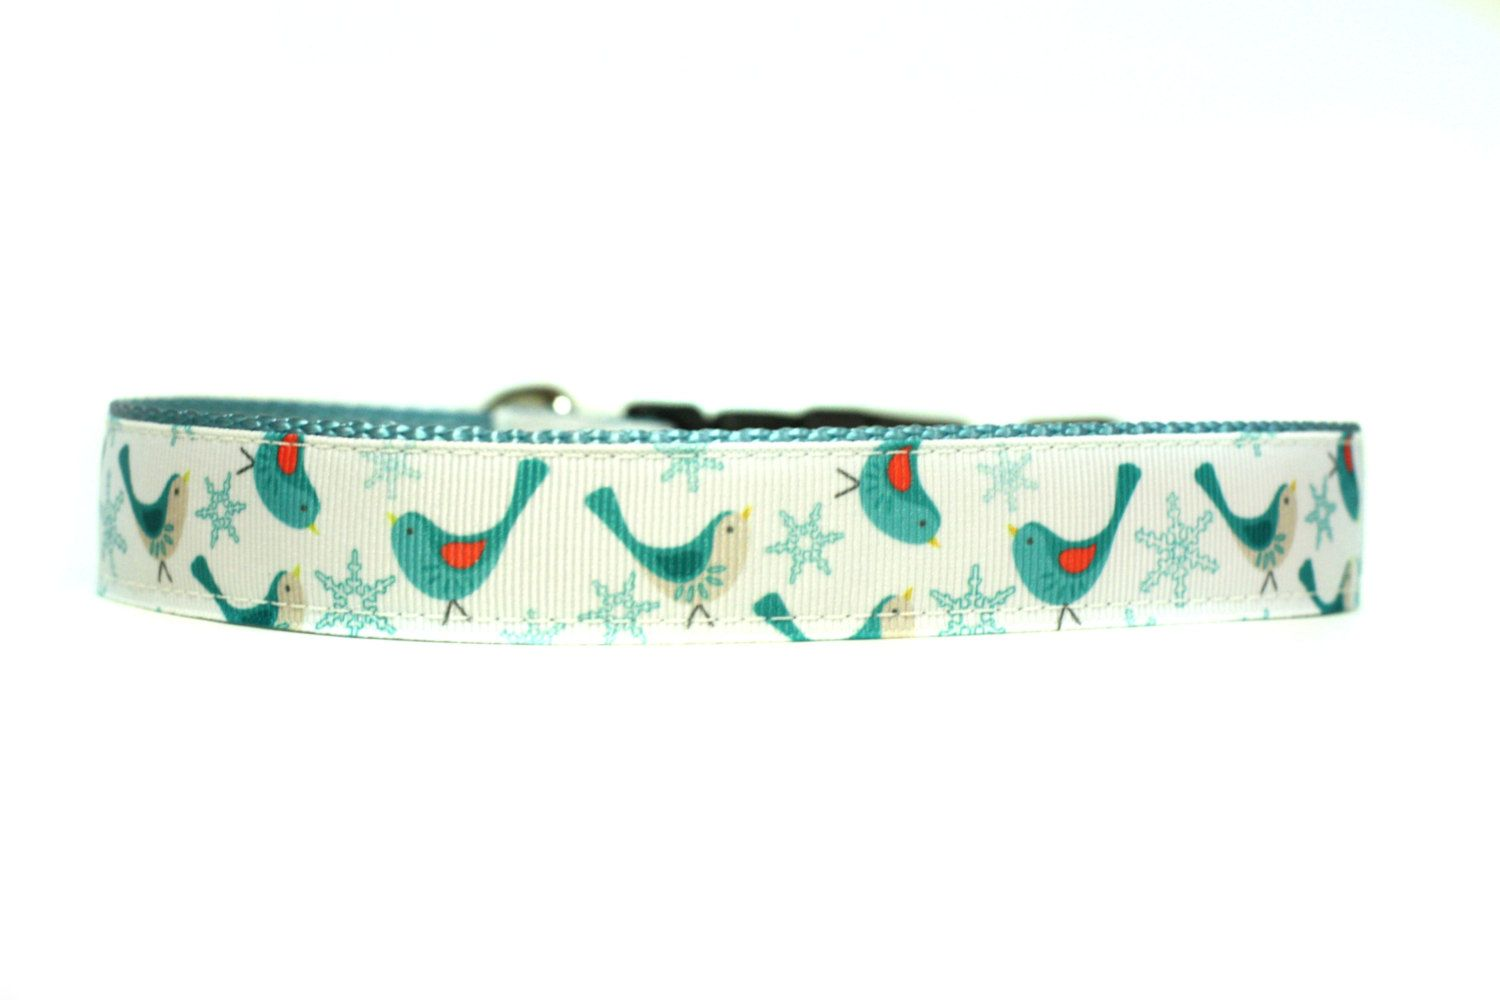 1 Inch Wide Dog Collar with Adjustable Buckle or Martingale in Holiday Tweet by codyscreations on Etsy